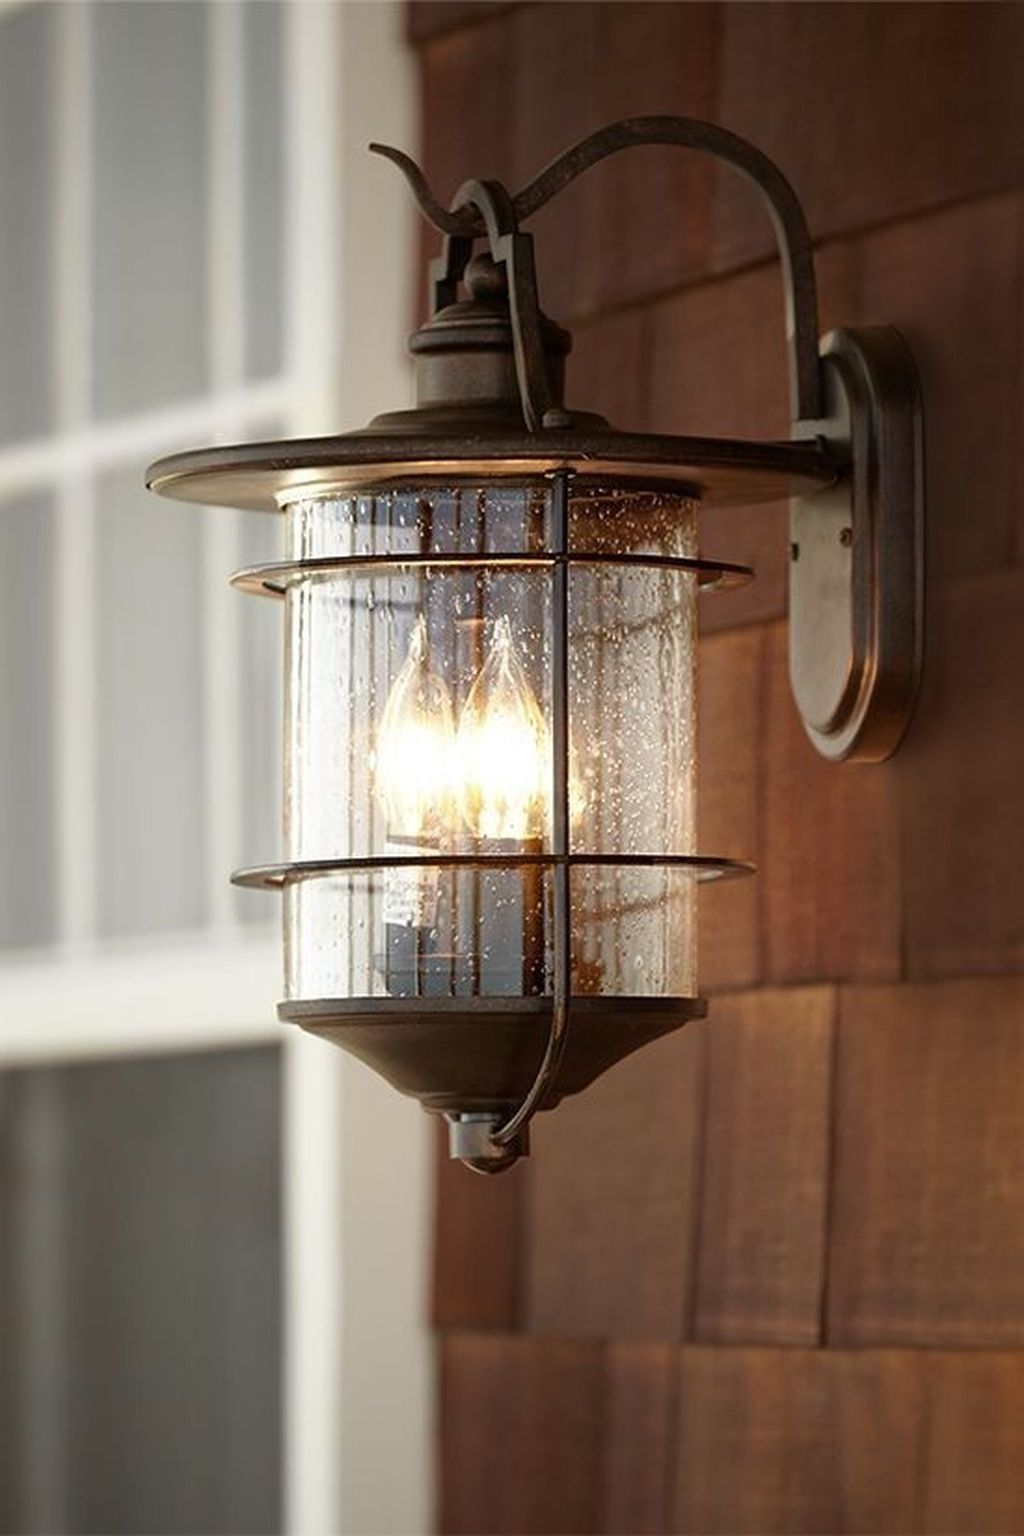 46 Stunning Traditional Outdoor Lighting Design Ideas Outdoor Light Fixtures Rustic Light Fixtures Rustic Lighting